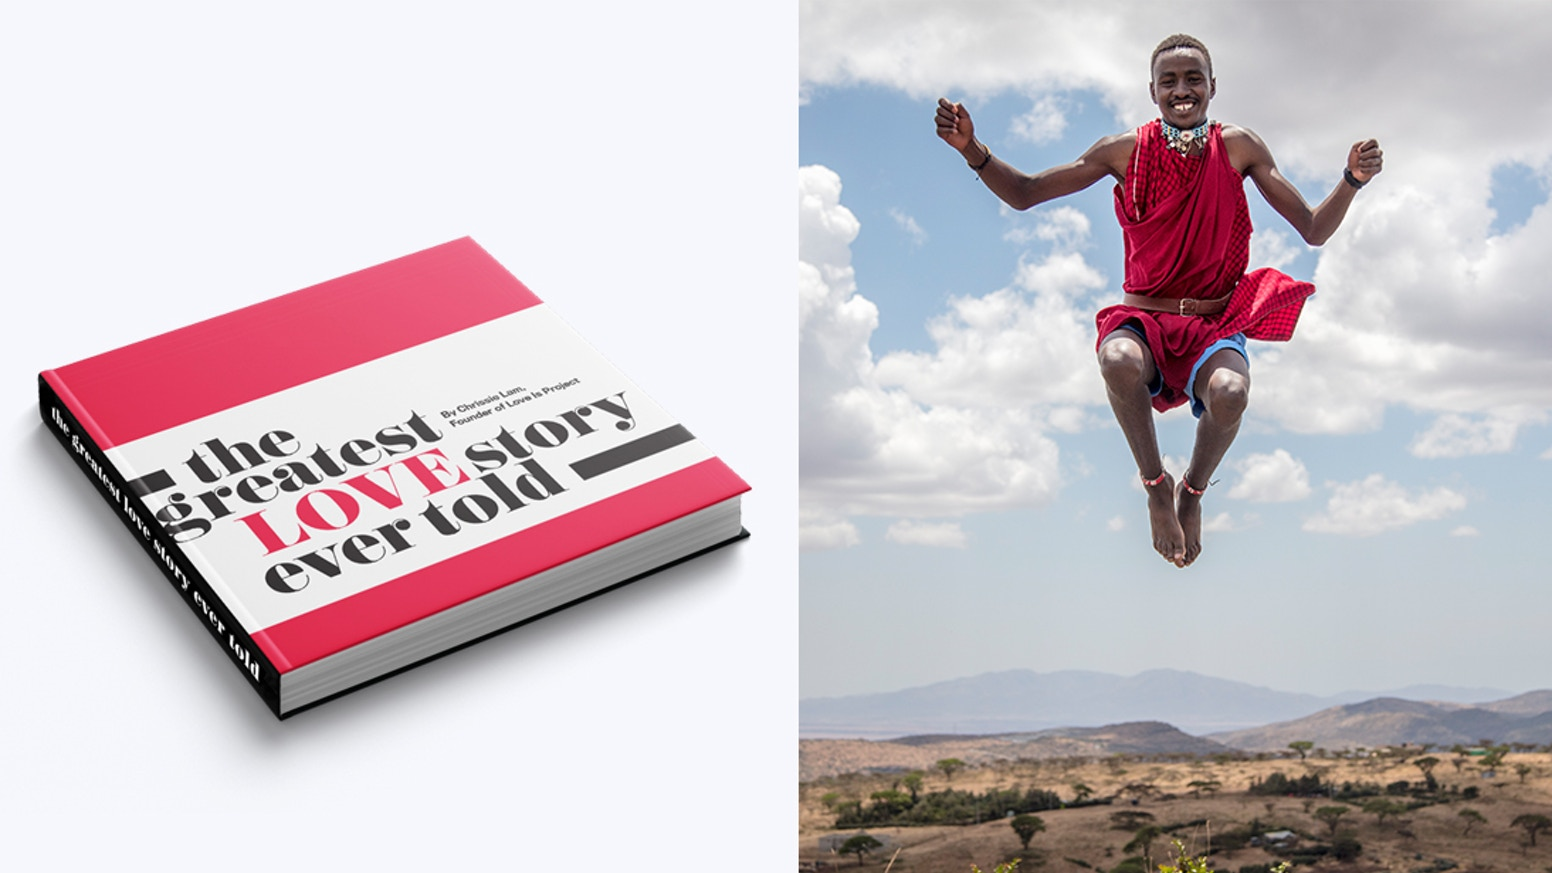 Feel connected through compelling stories and images captured in this stunning book that explores global perspectives on love